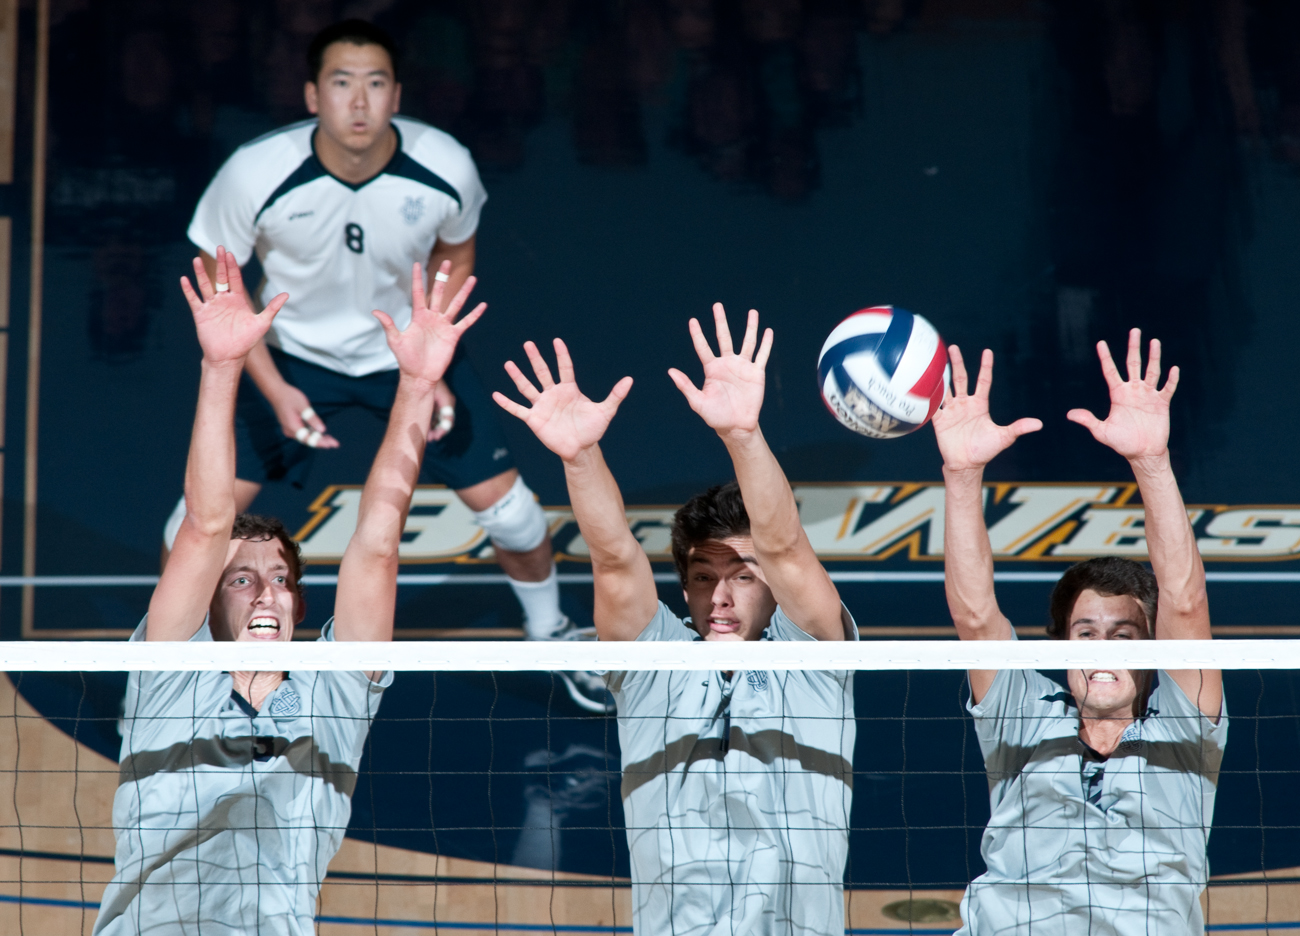 04-11-09_Mes_VBall_Roeder_71